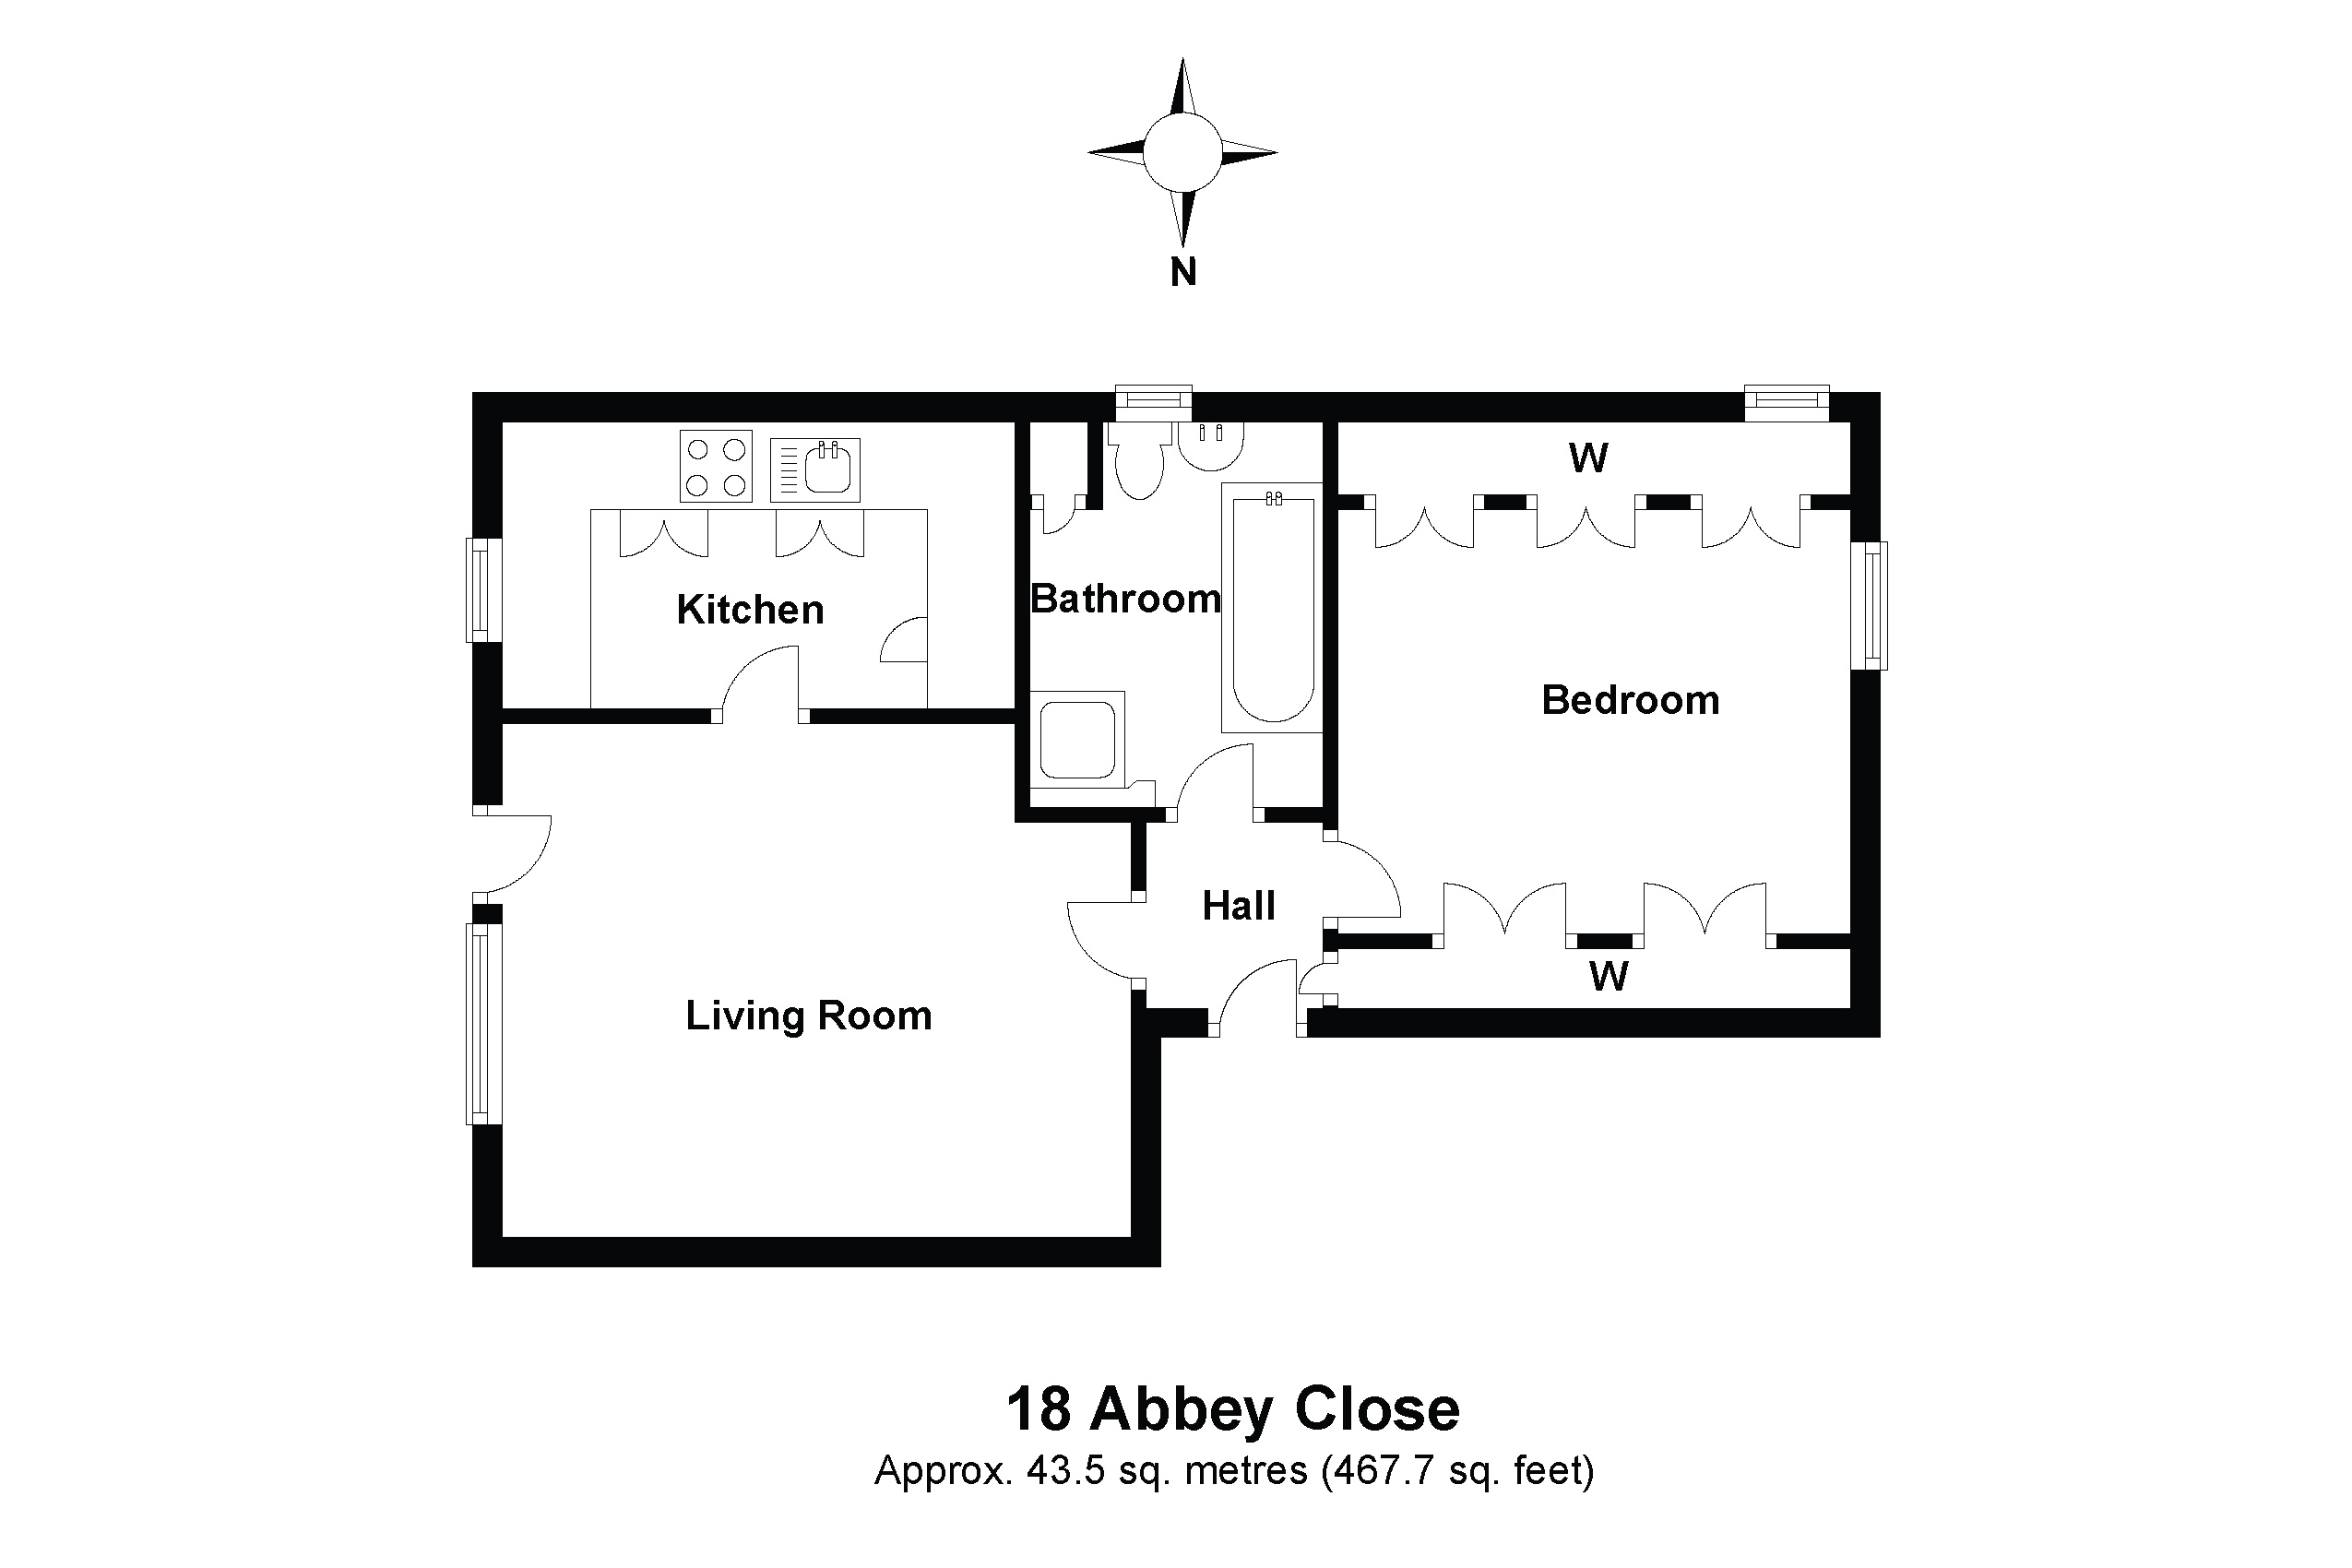 18 Abbey Close Floorplan